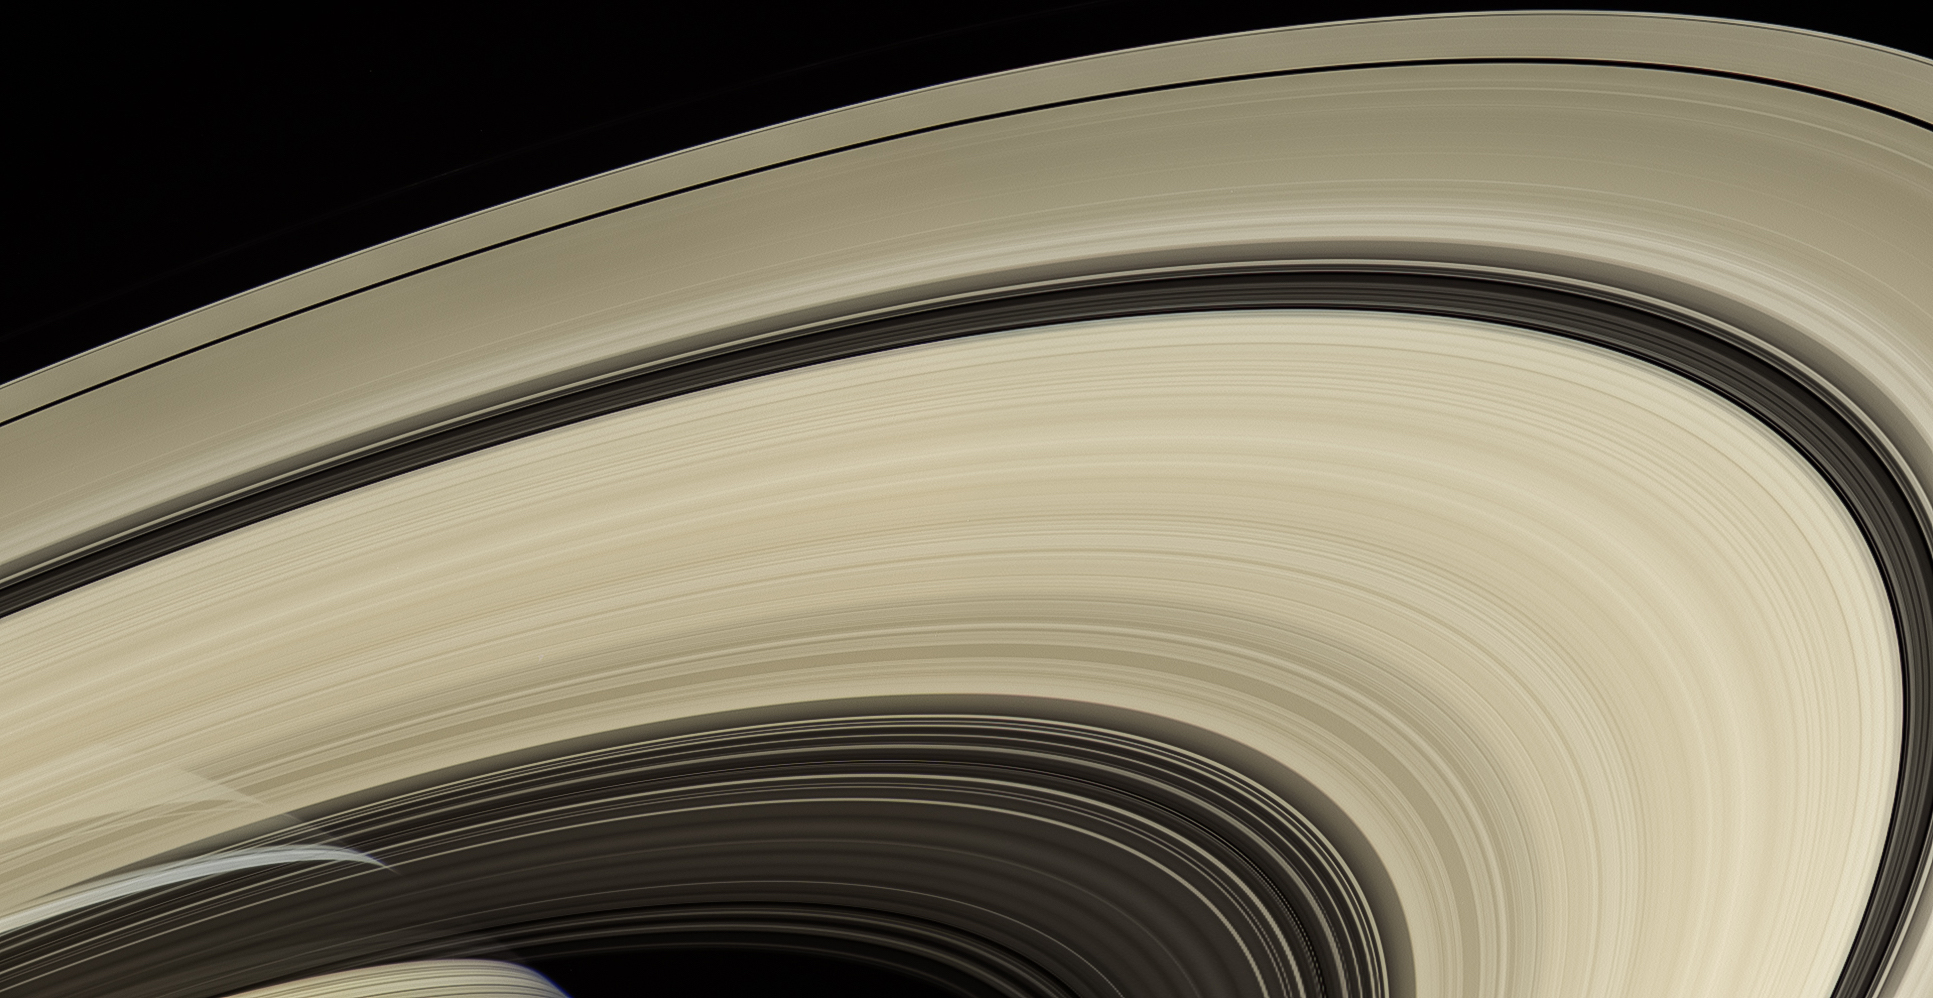 Photo: Saturn's rings are perhaps the most recognized feature of any world in our solar system. Cassini spent more than a decade examining them more closely than any spacecraft before it. Credit: NASA/JPL-Caltech/Space Science Institute